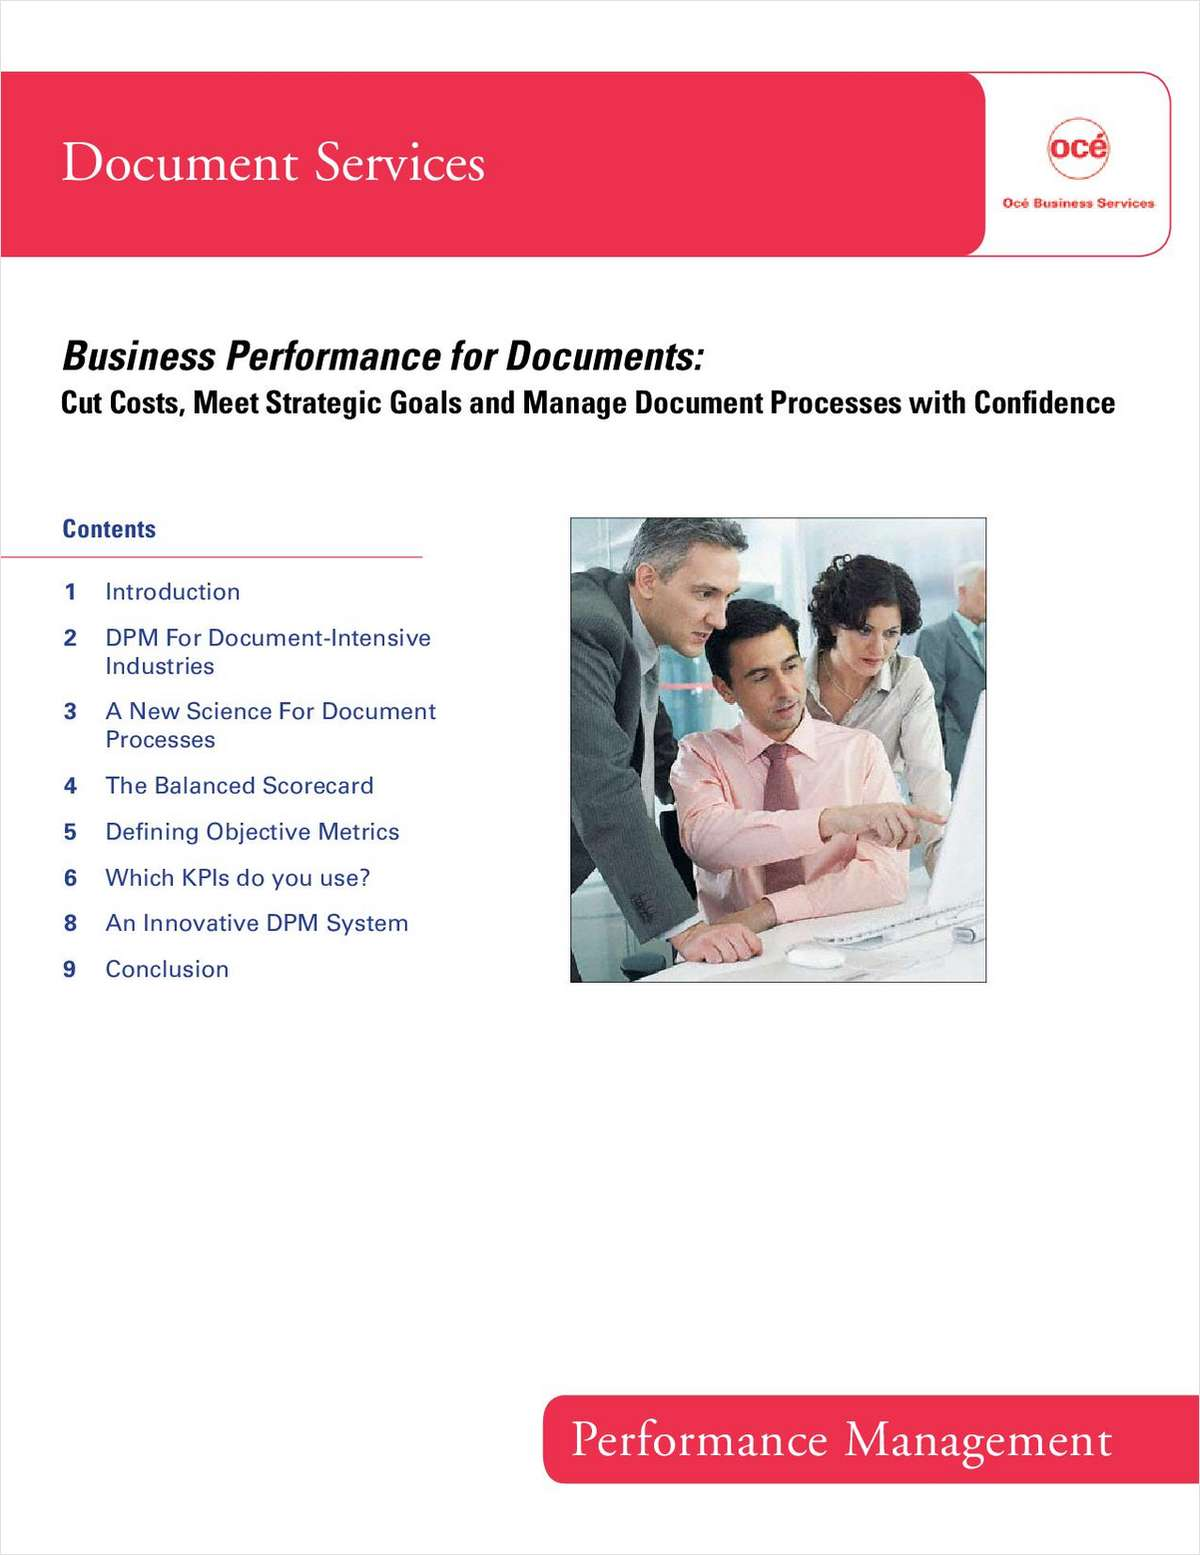 Business Performance Management for Document Processes: Cut Costs, Meet Strategic Goals and Manage Document Processes with Confidence